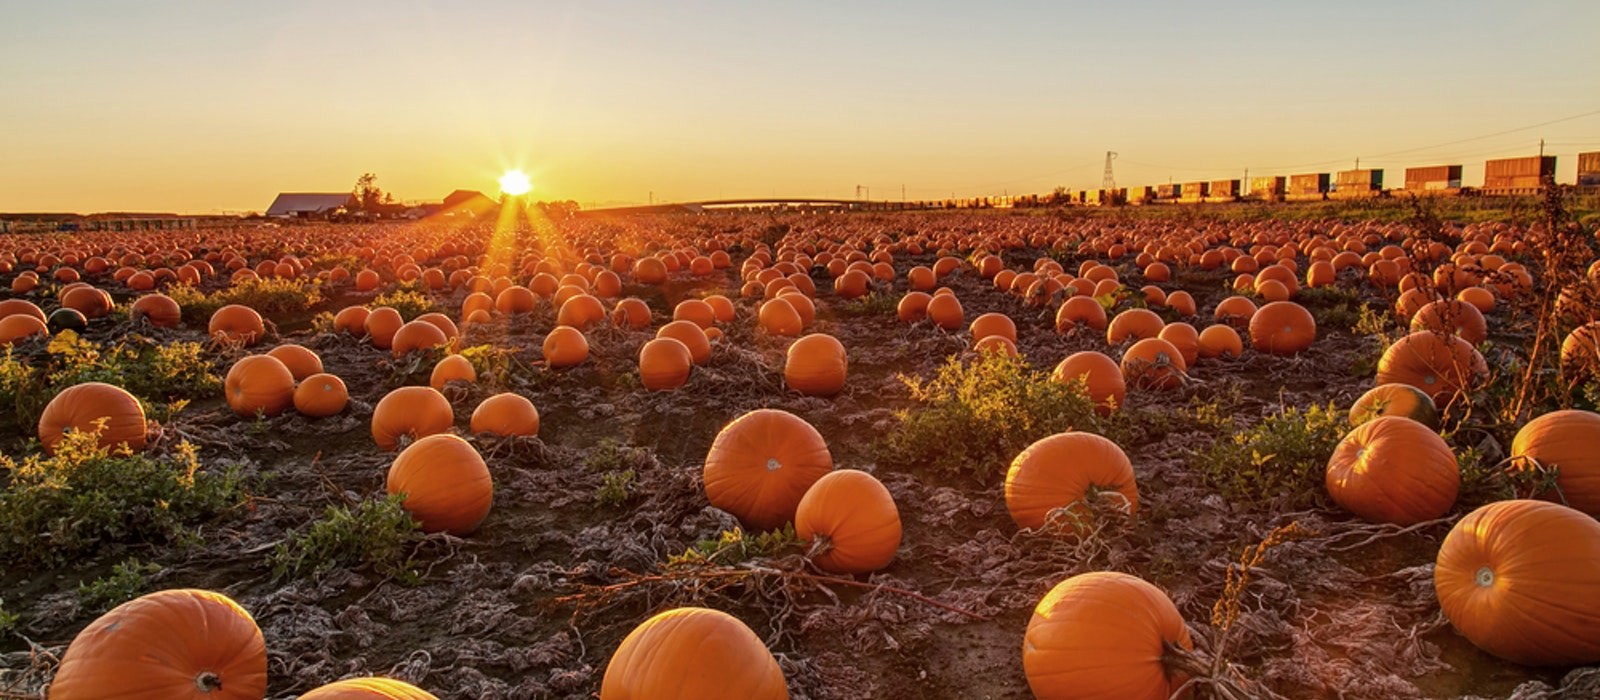 No fall harvest season is complete without some time at a pumpkin patch.